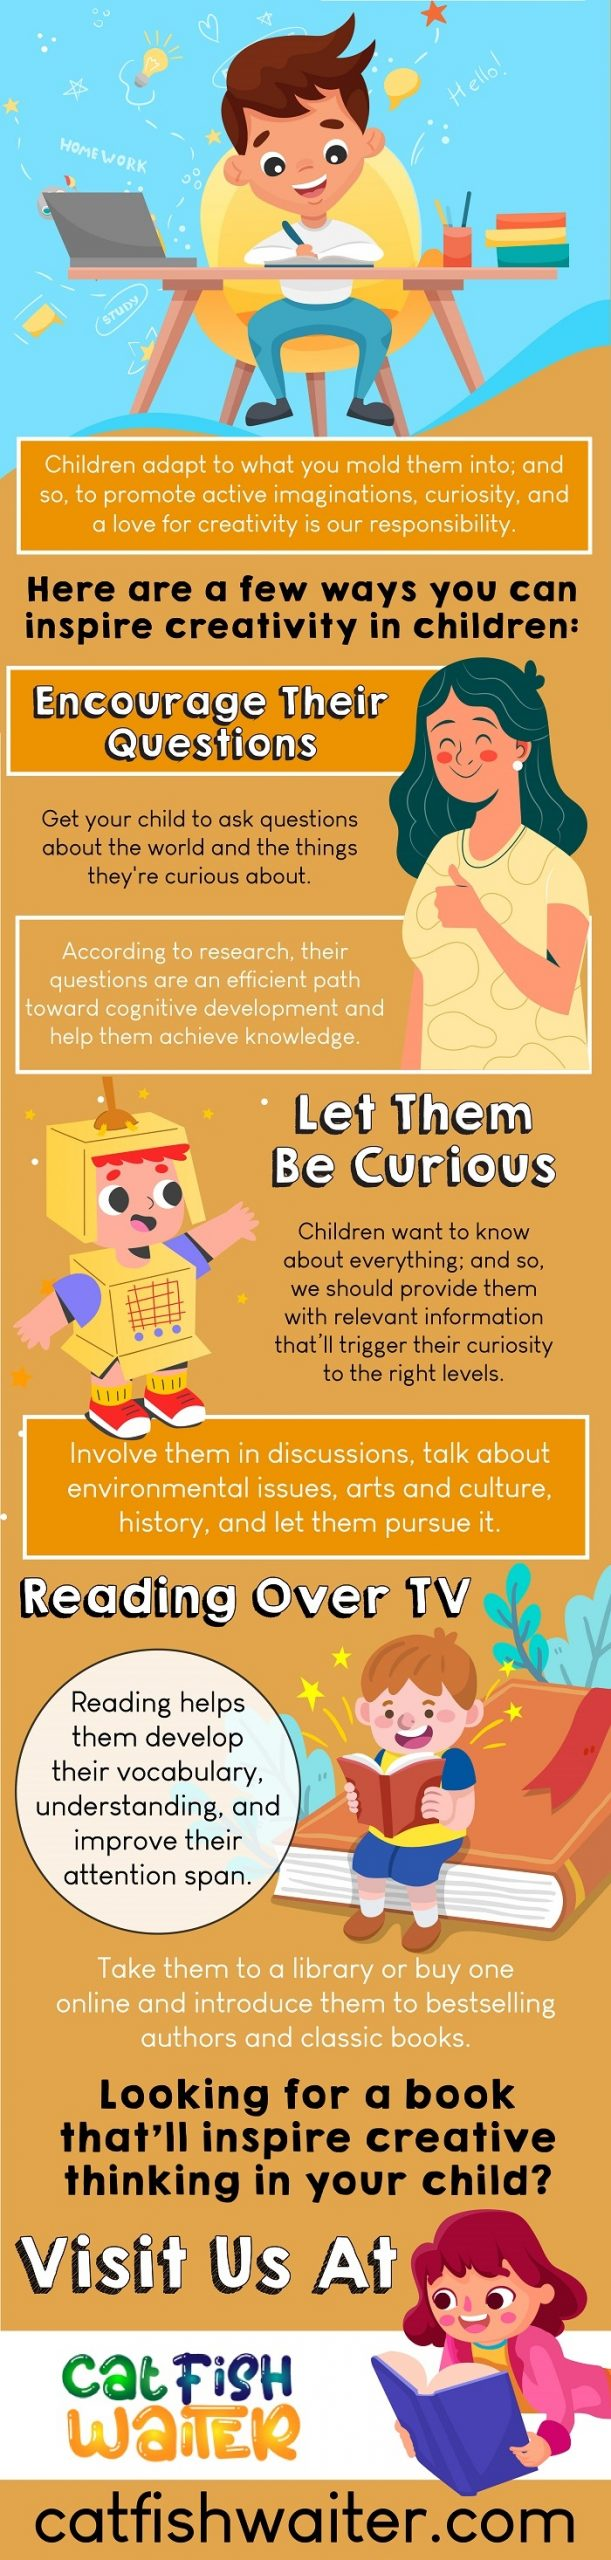 How To Inspire Creative Thinking In Children